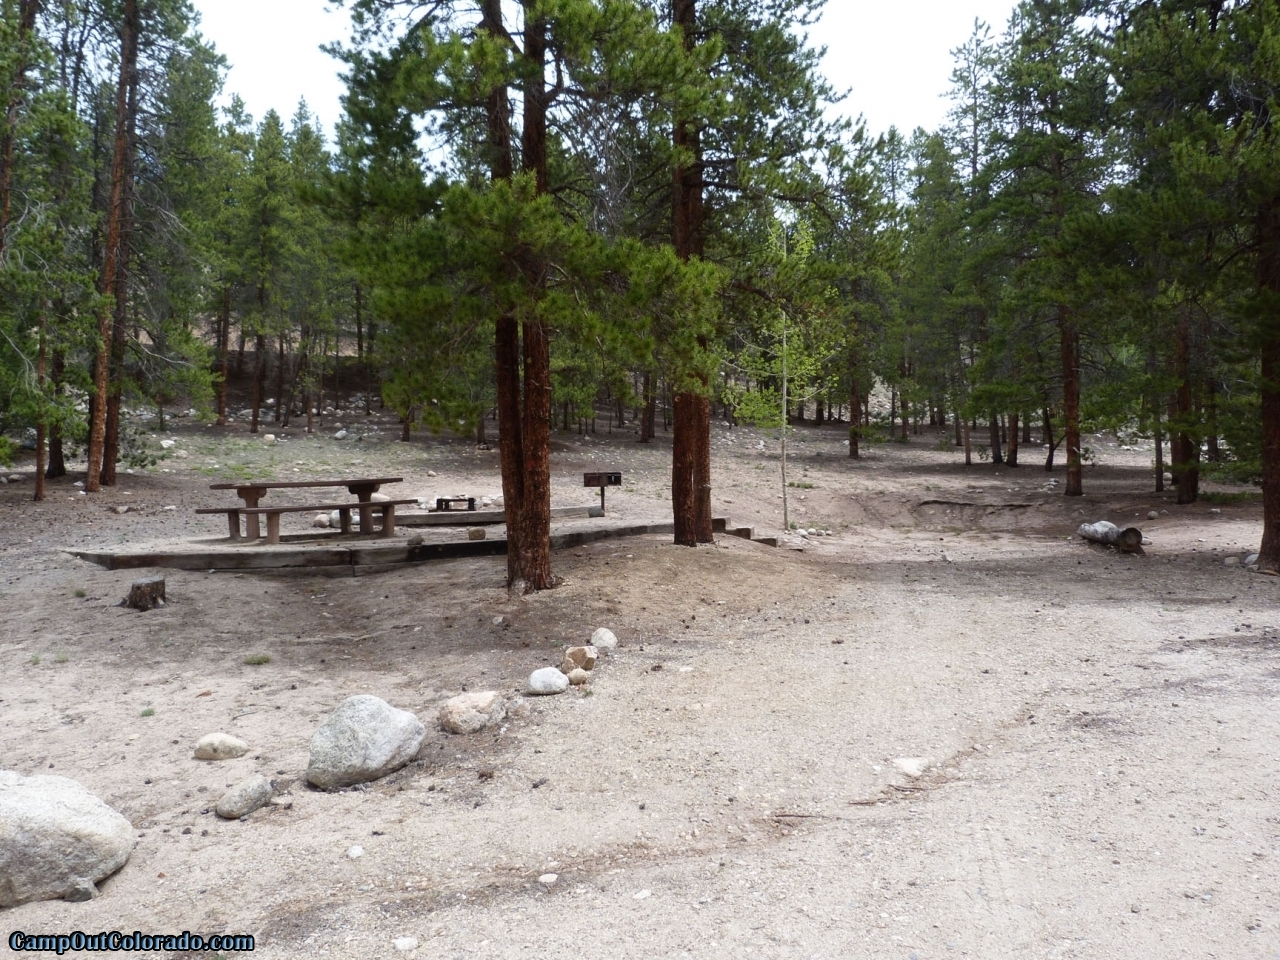 camp-out-colorado-lakeview-campground-forest-camping